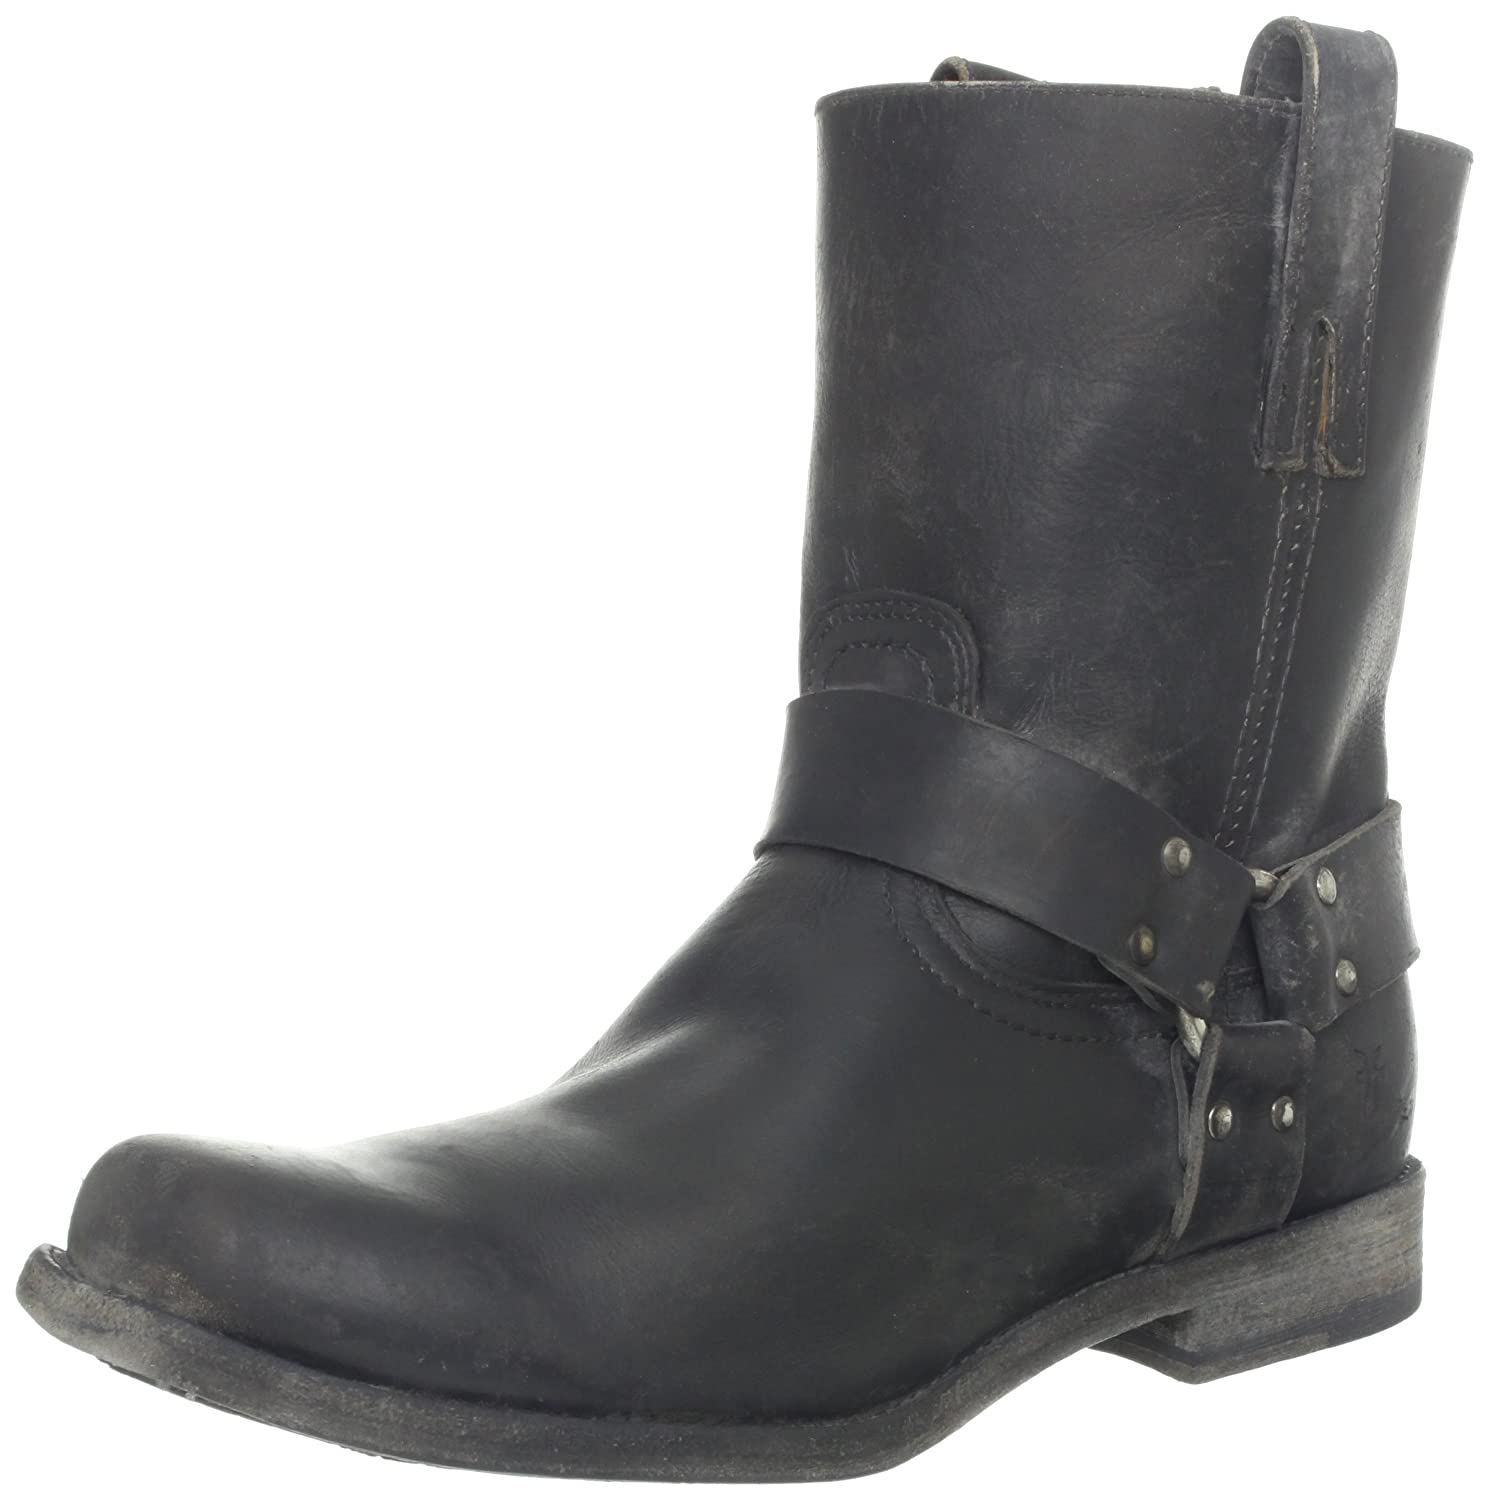 FRYE Smith Harness, Stivali Uomo Nero Noir (Blk) 44.5